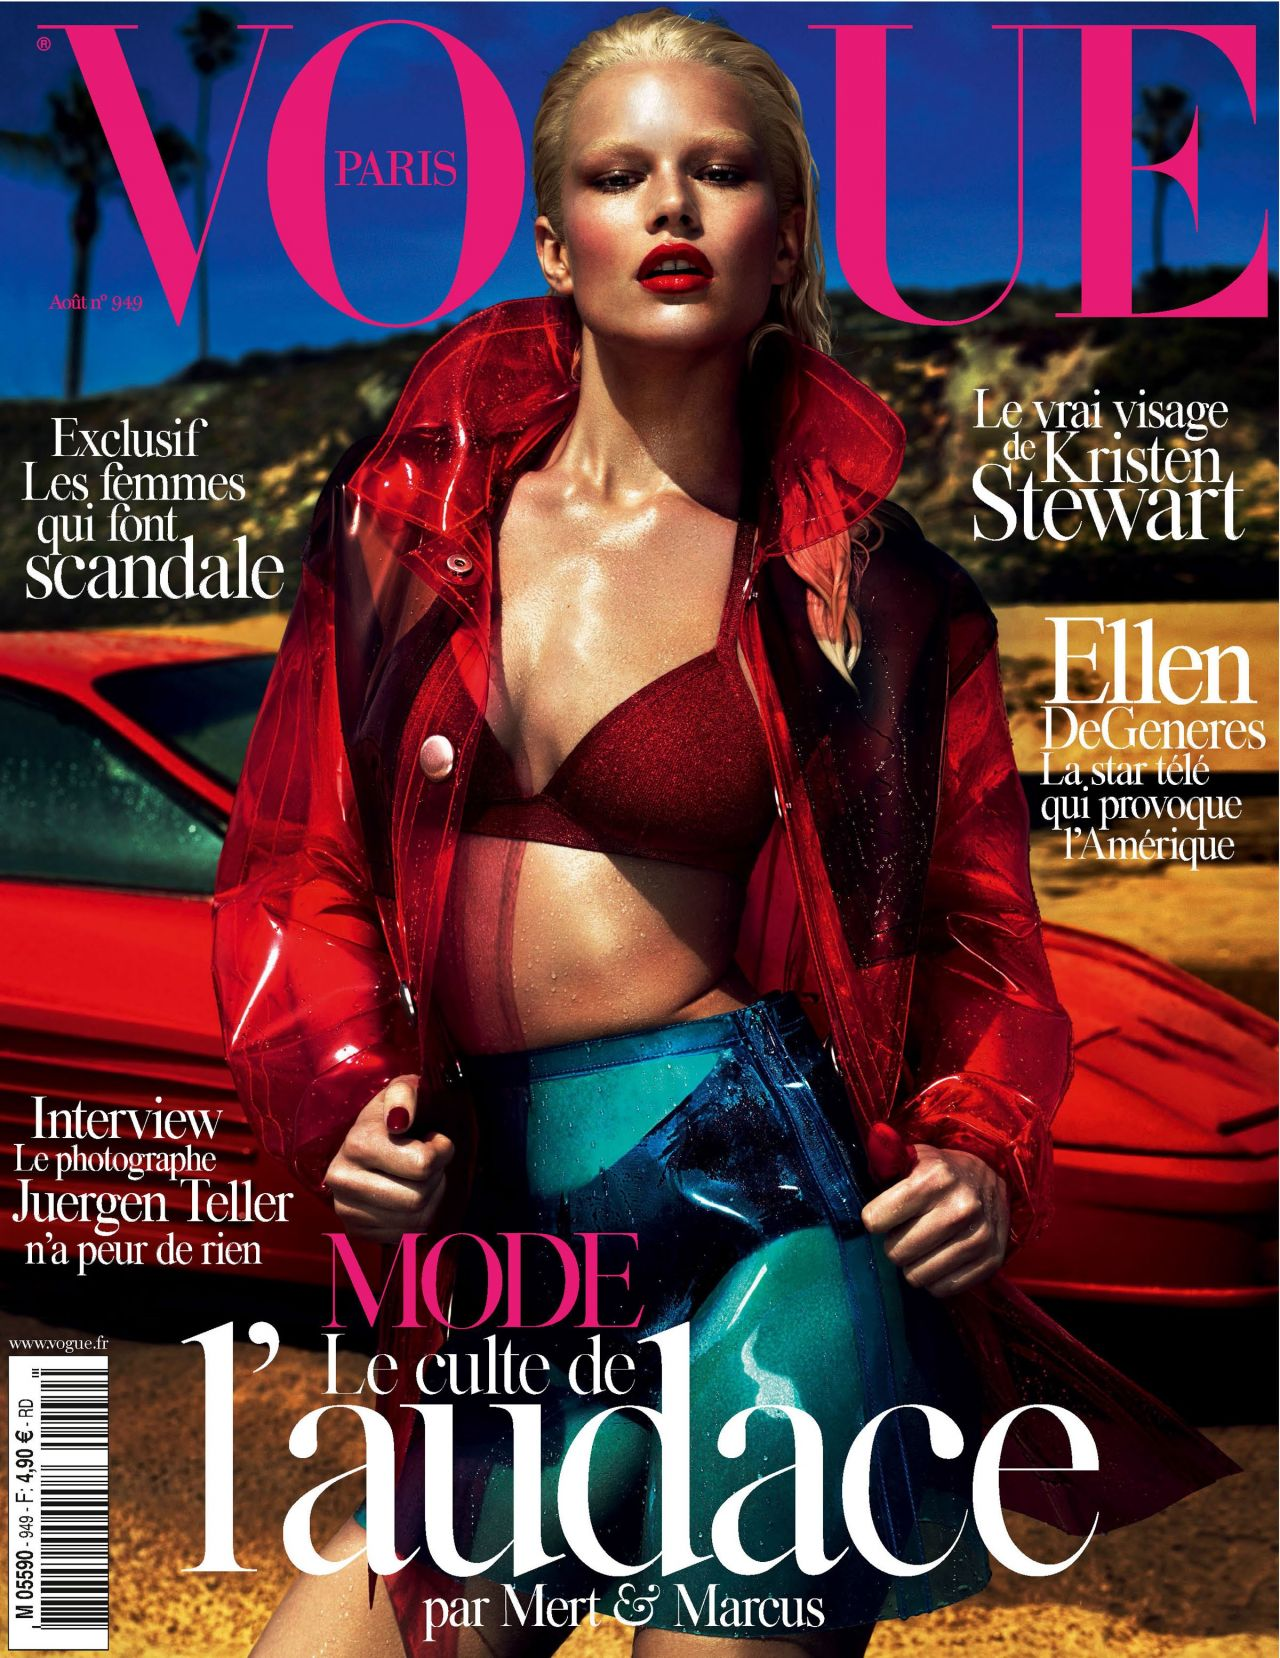 Natasha Poly - Vogue Magazine (Paris) - August 2014 Cover